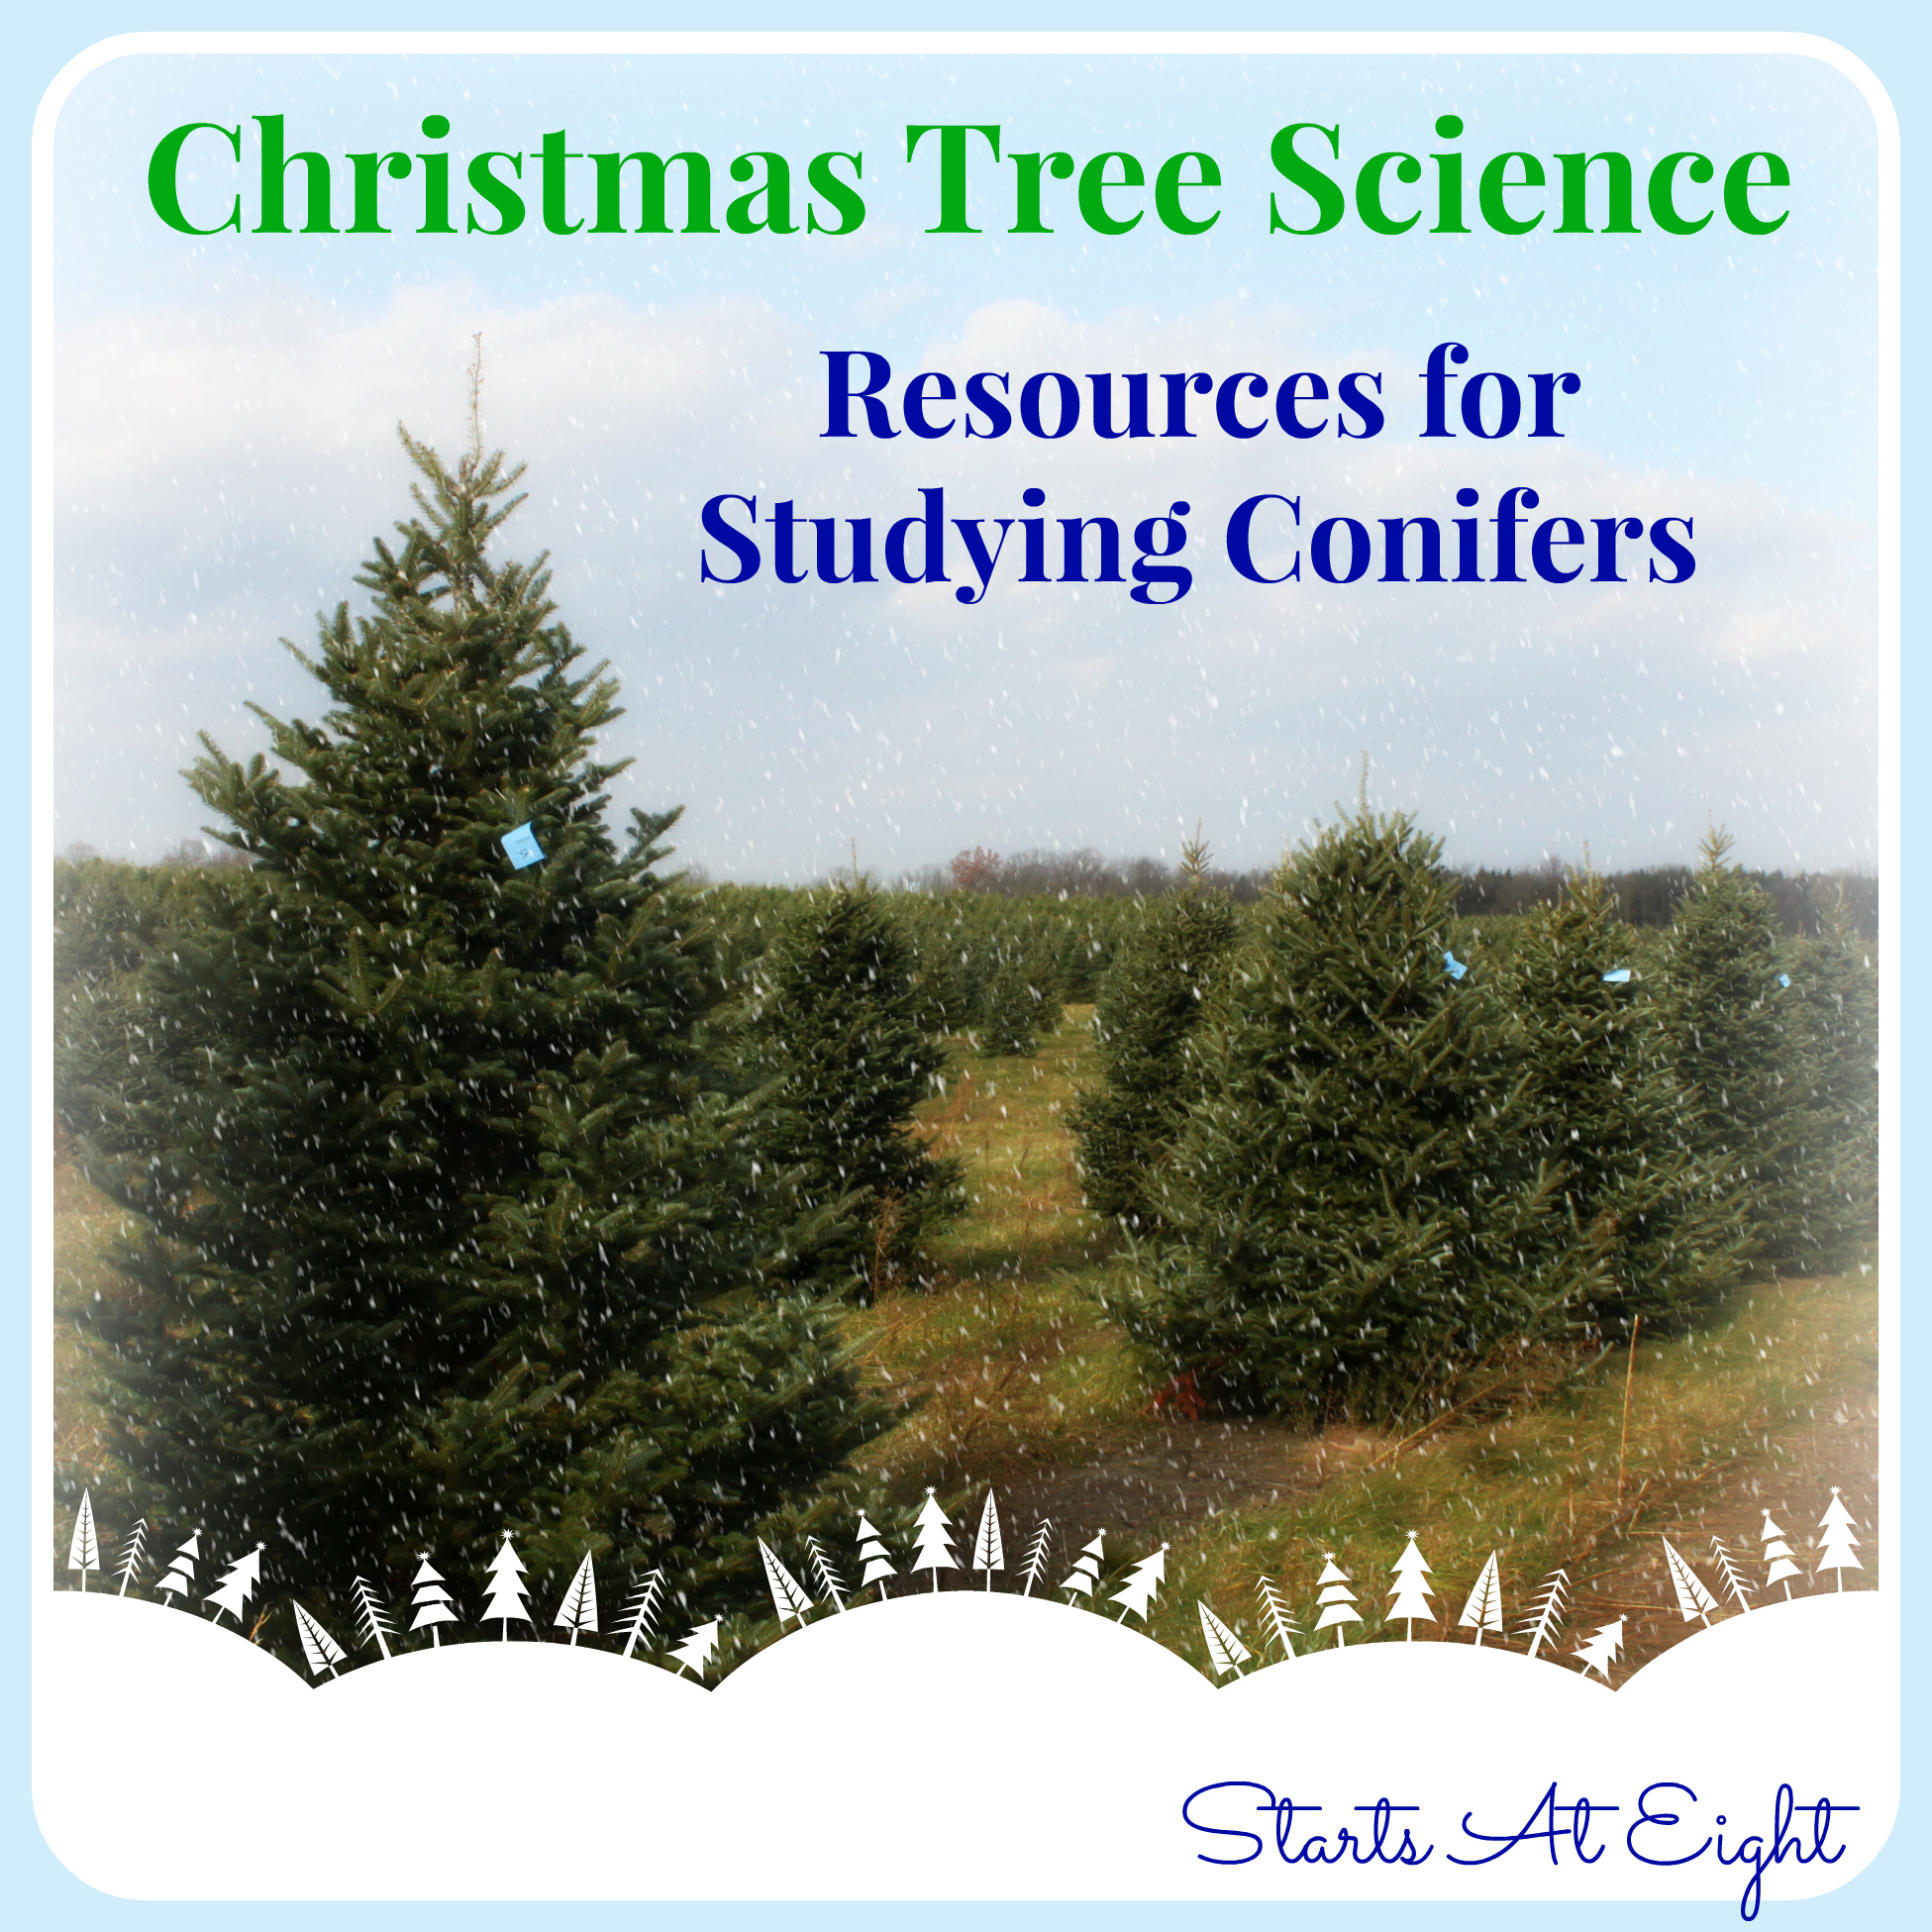 Christmas Tree Science Resources For Studying Conifers